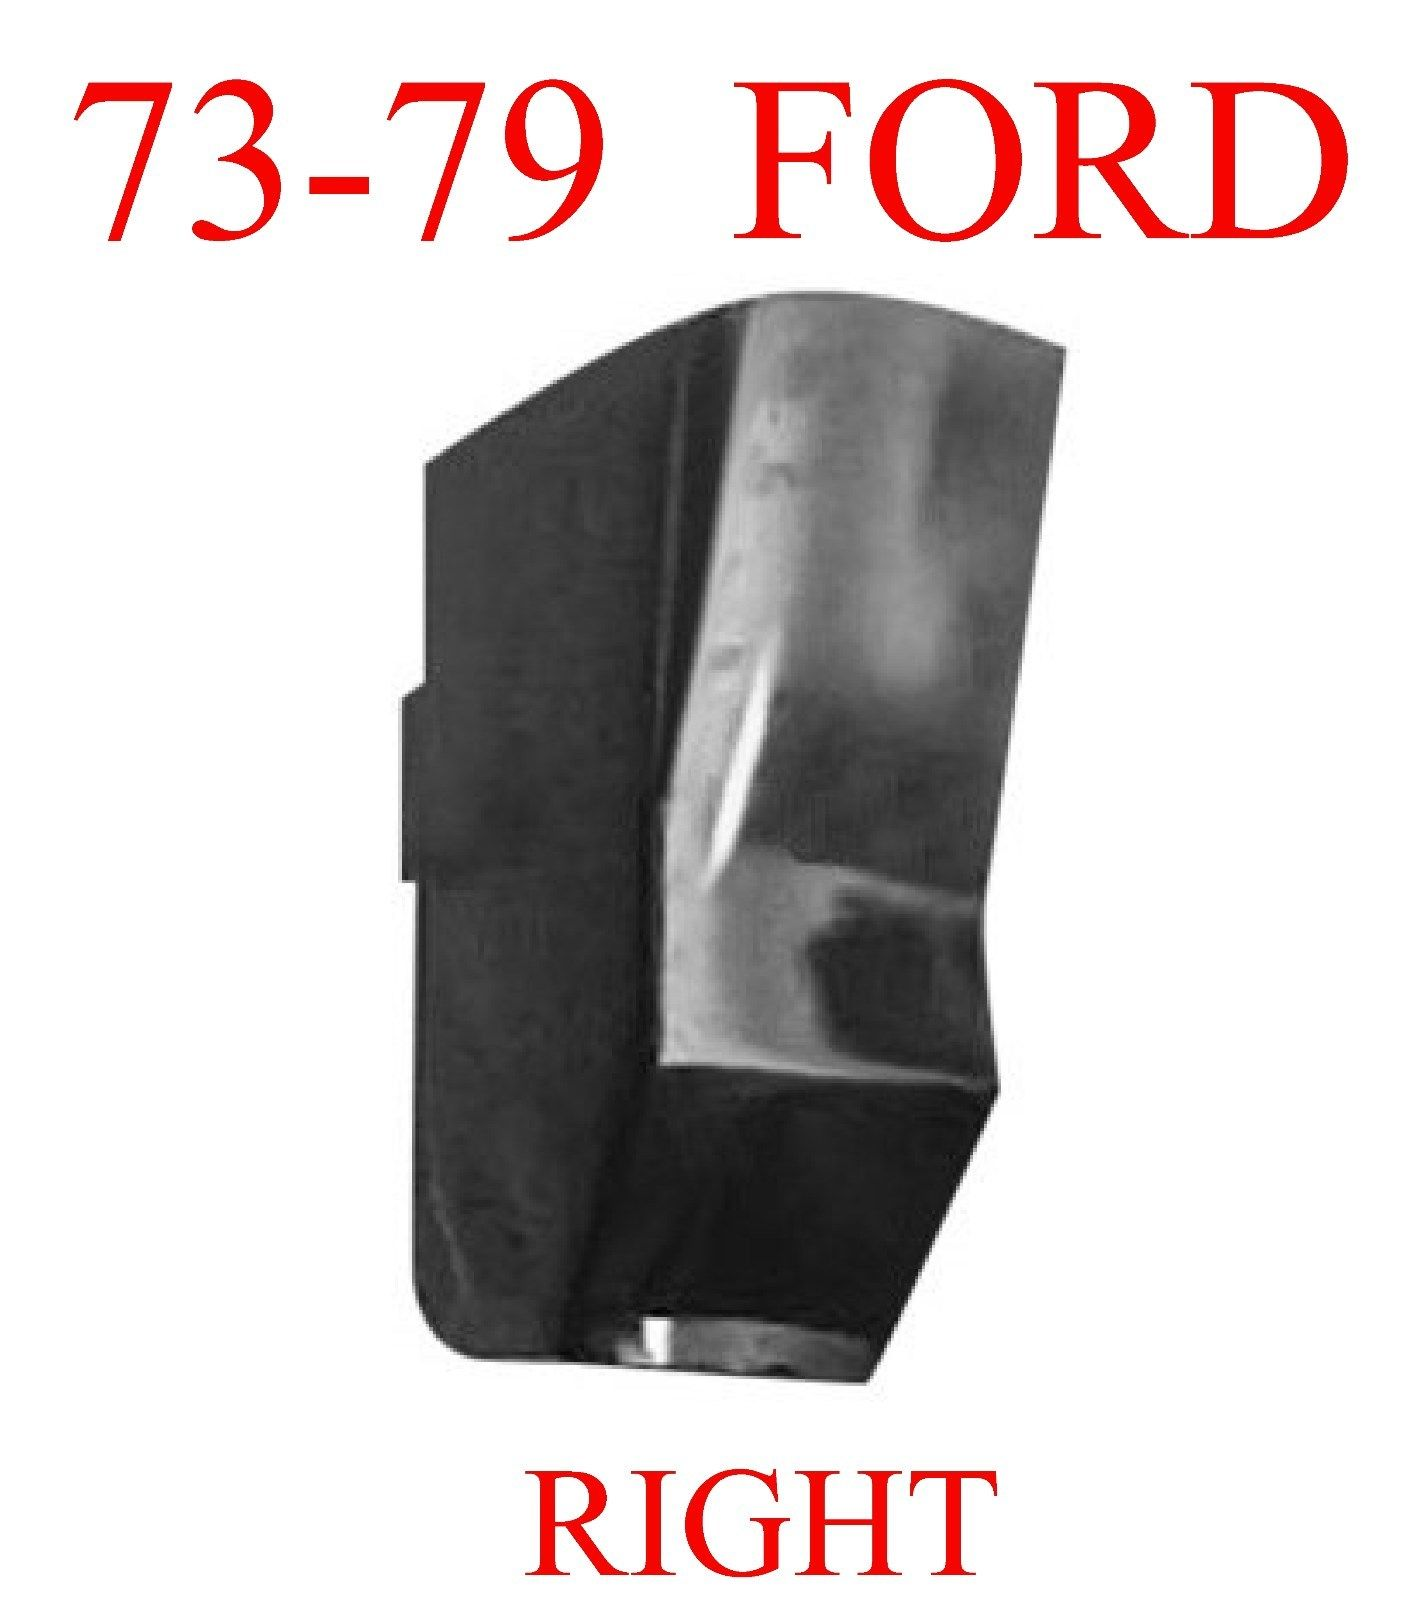 73 79 Ford RIGHT Cab Corner, Regular Cab